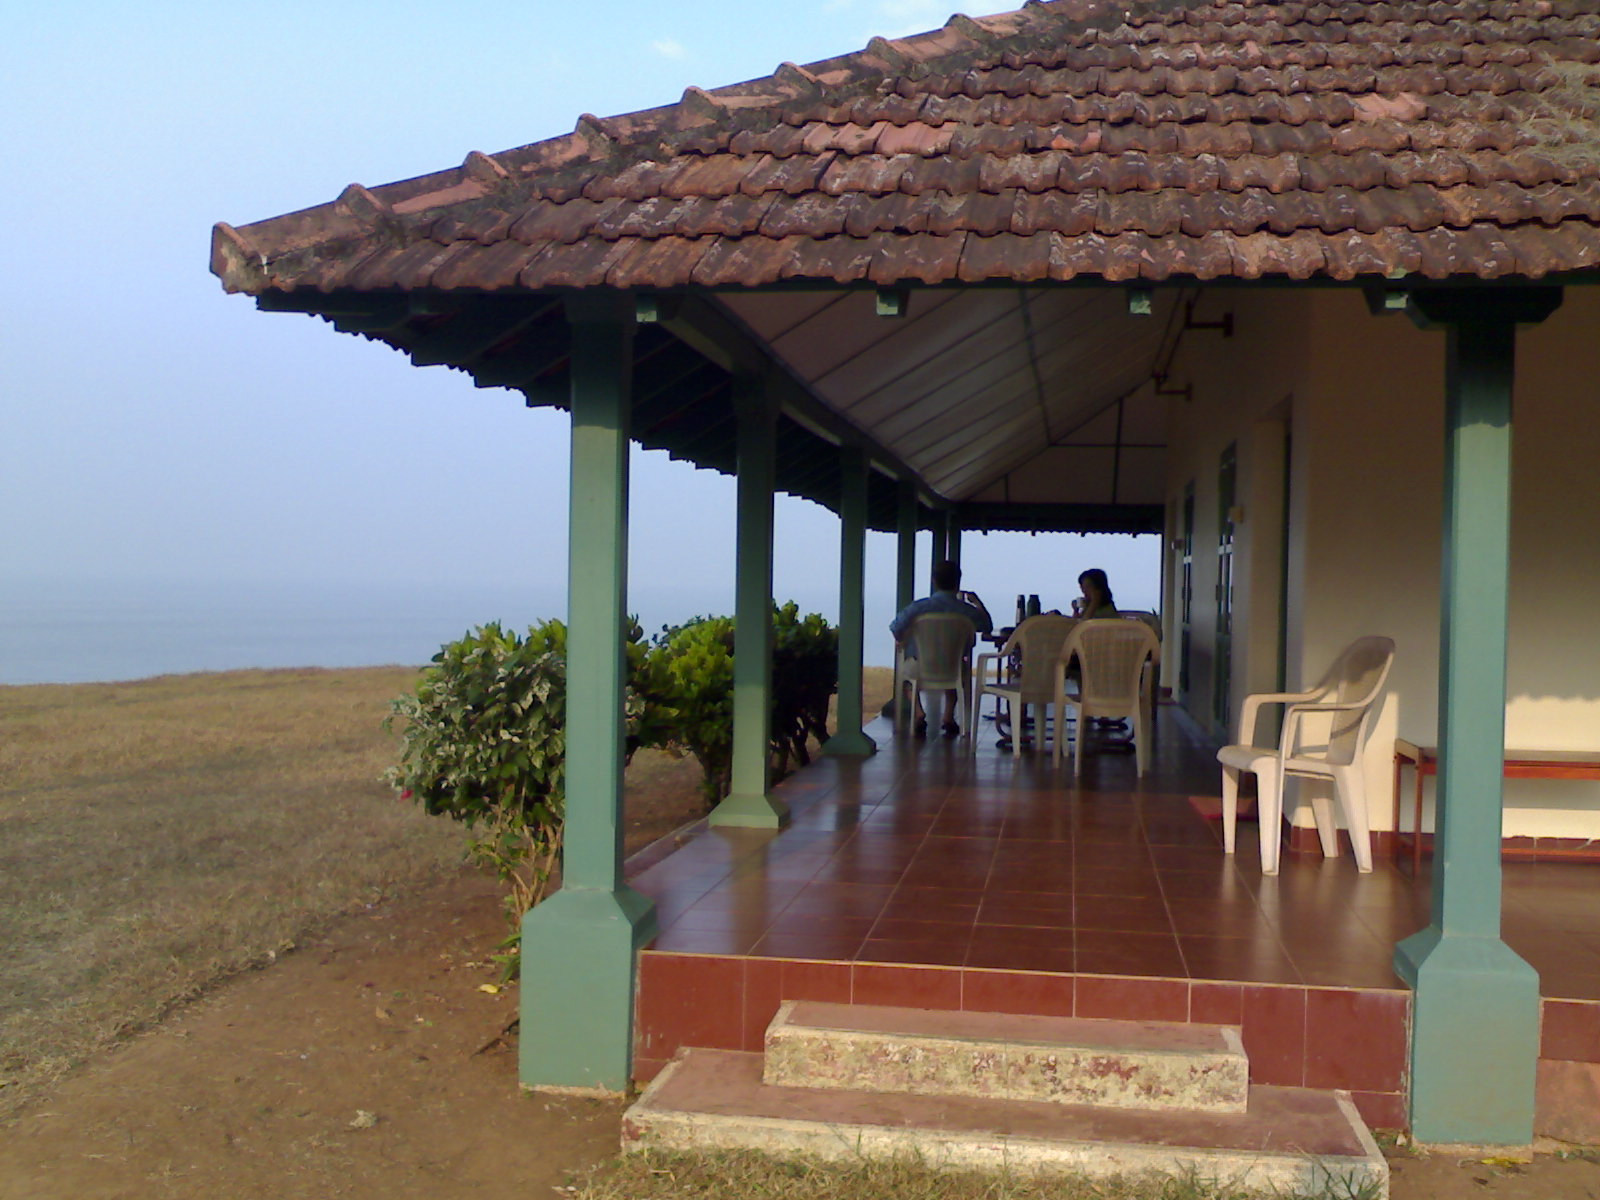 File:Payyambalam Resort.jpg - Wikimedia Commons